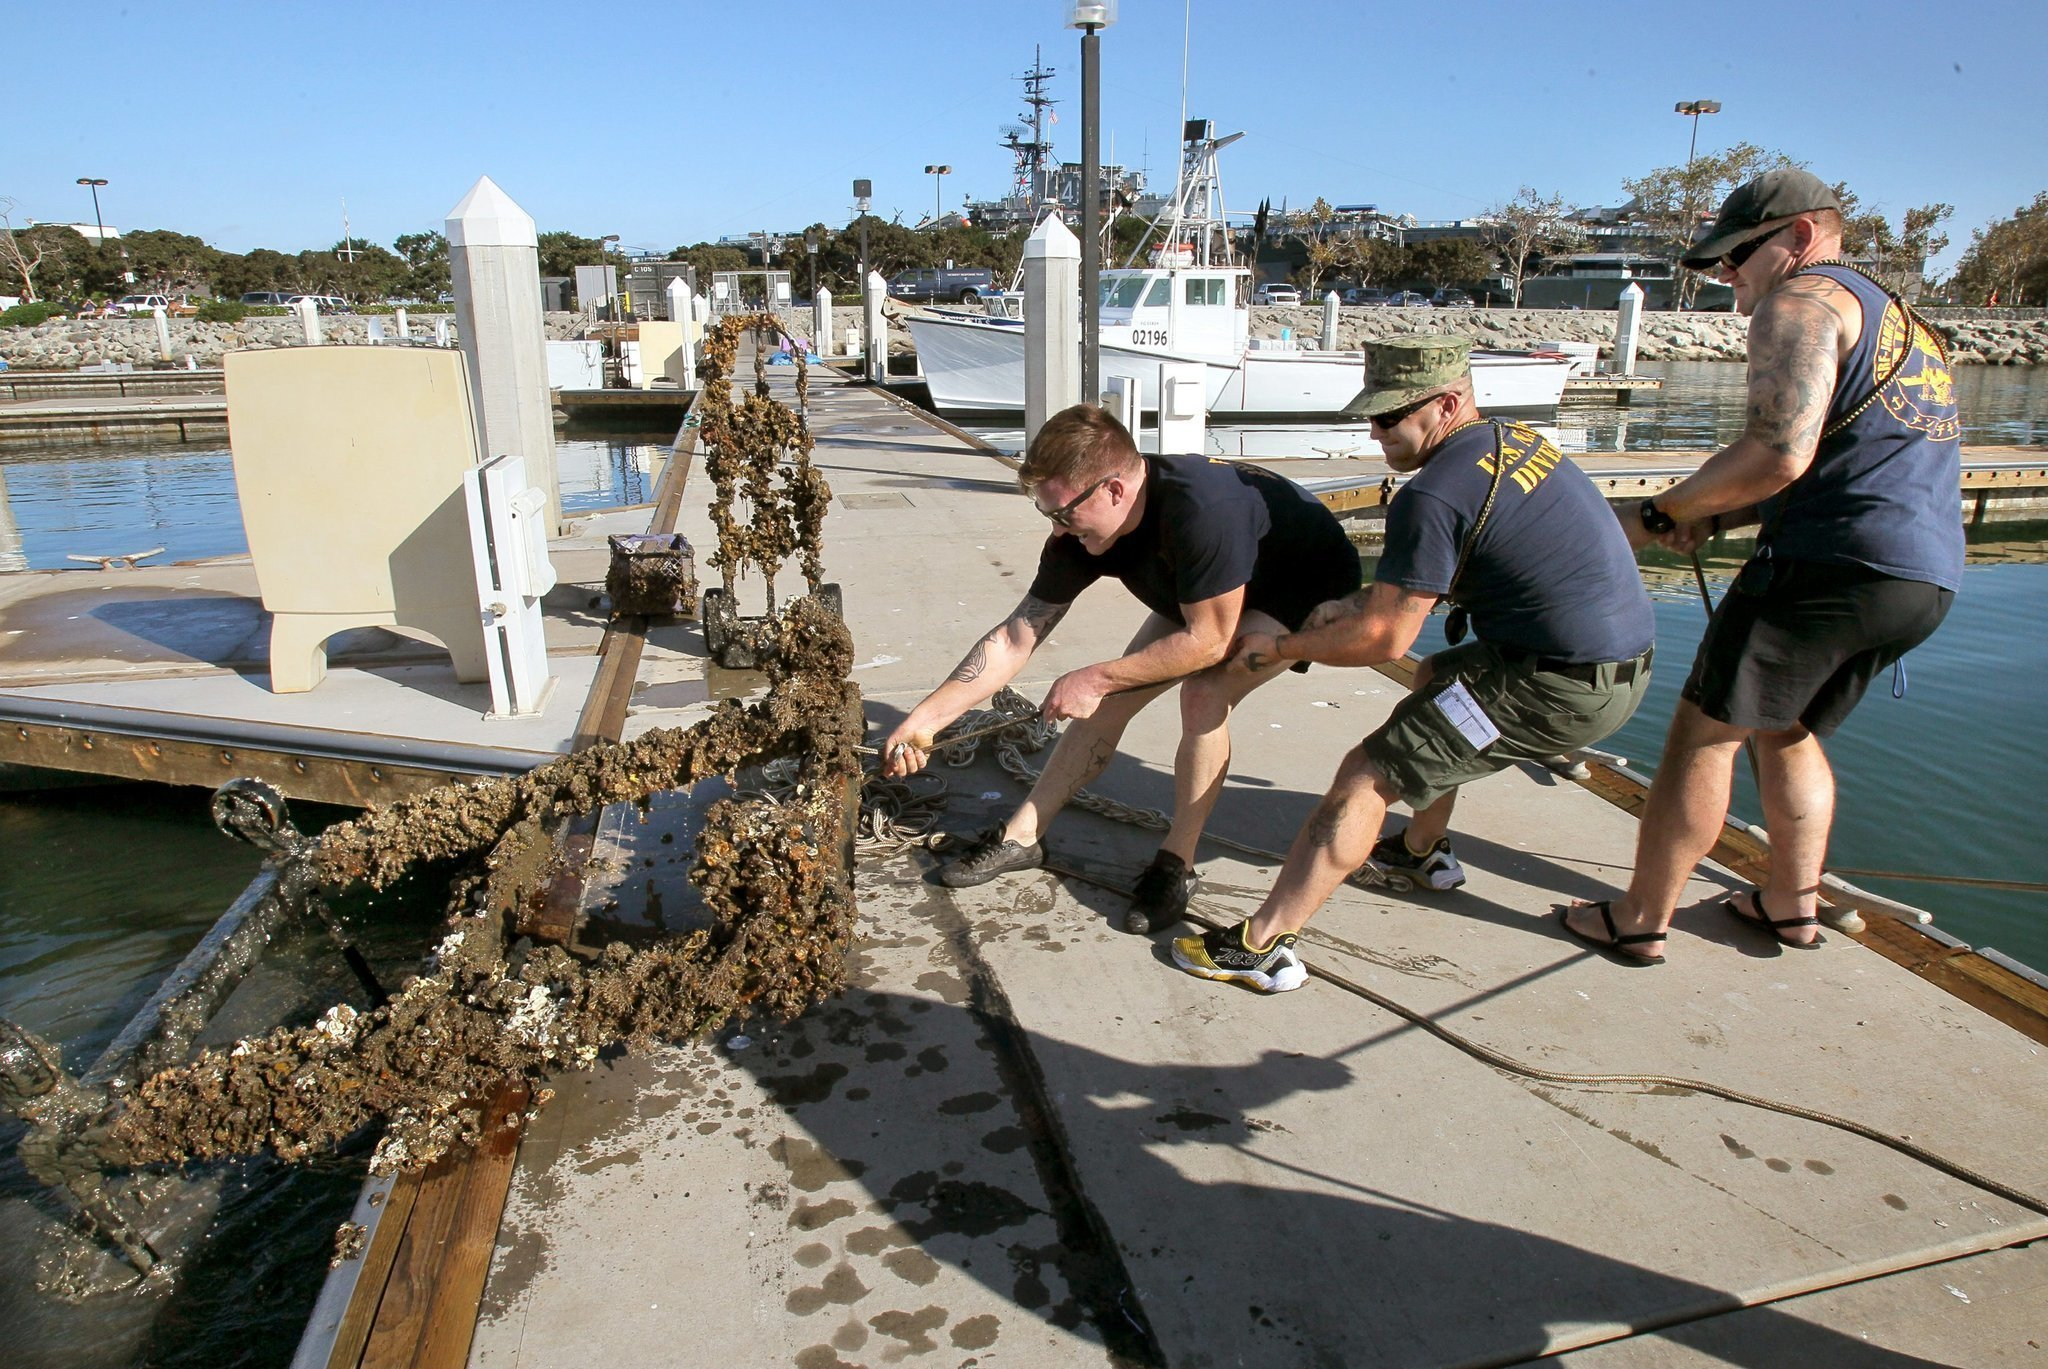 Bay cleanup yields waste cornucopia the san diego union for Mattress cleaning service san diego